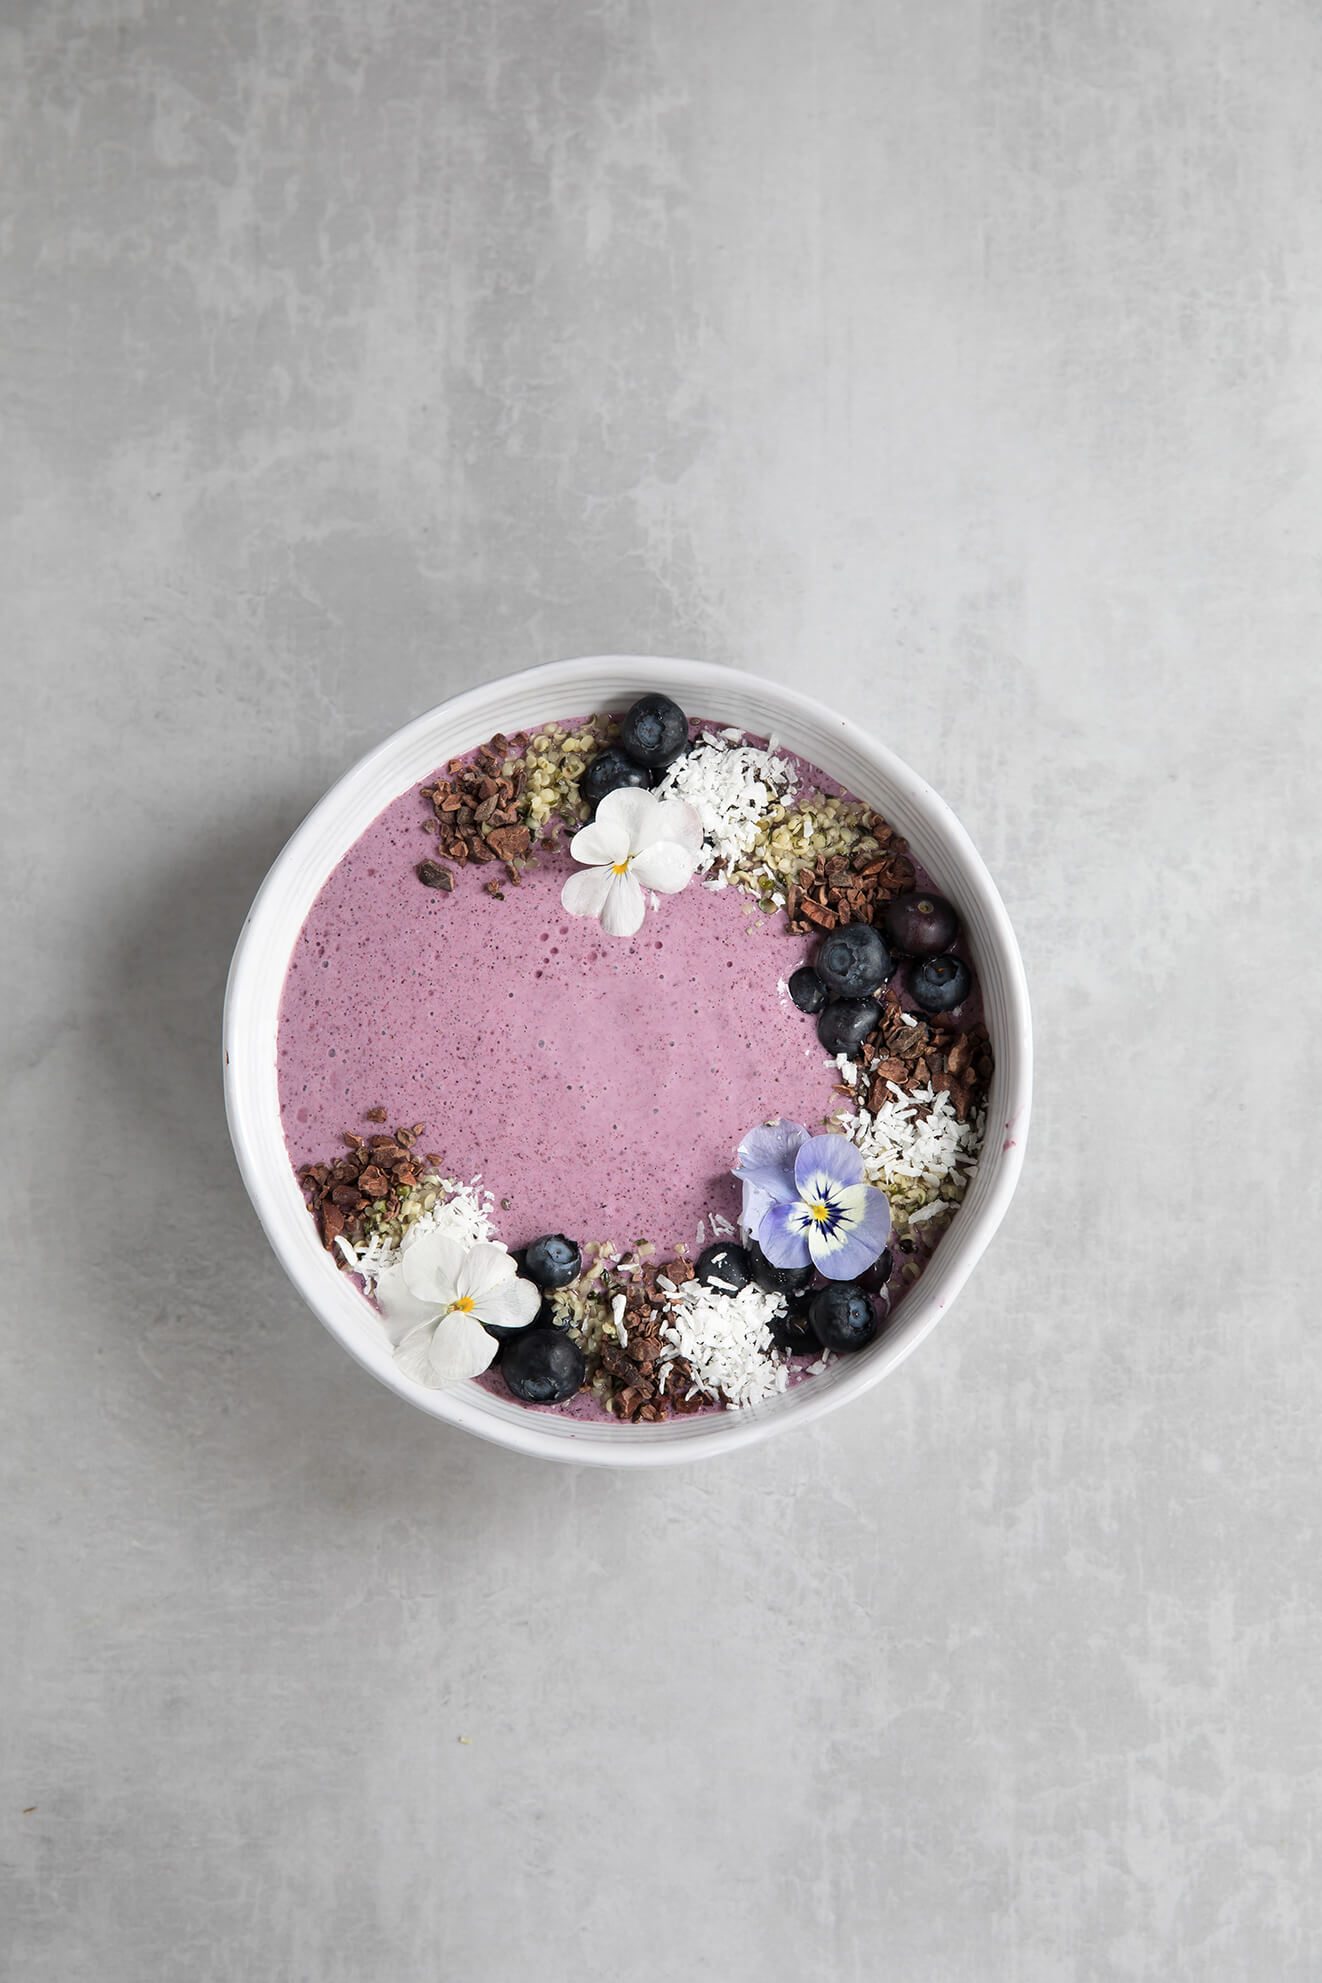 Low Fructose Acai and Blueberry Smoothie Bowl